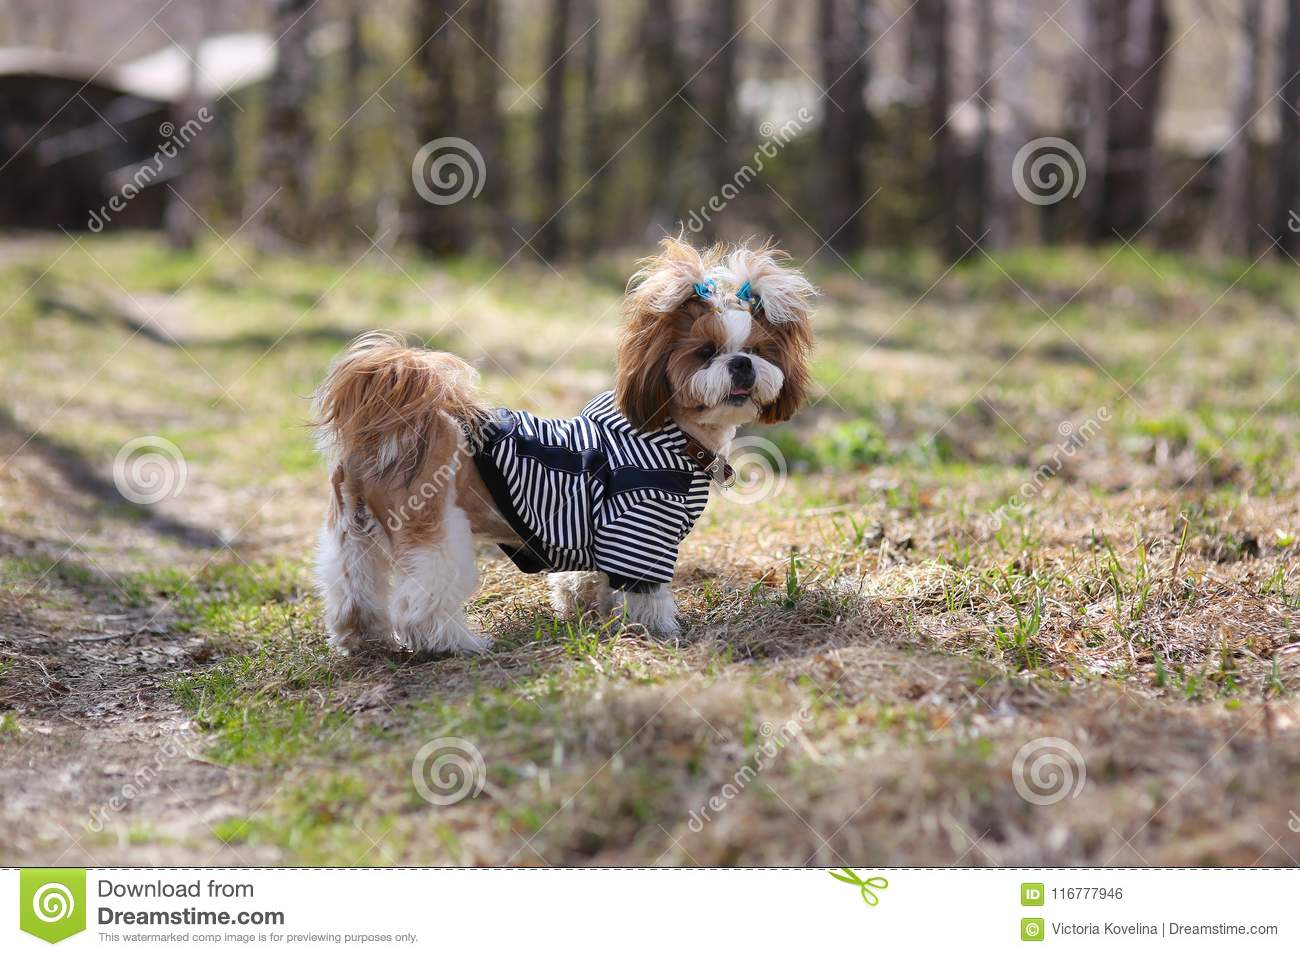 Cute puppy shih tzu dressed